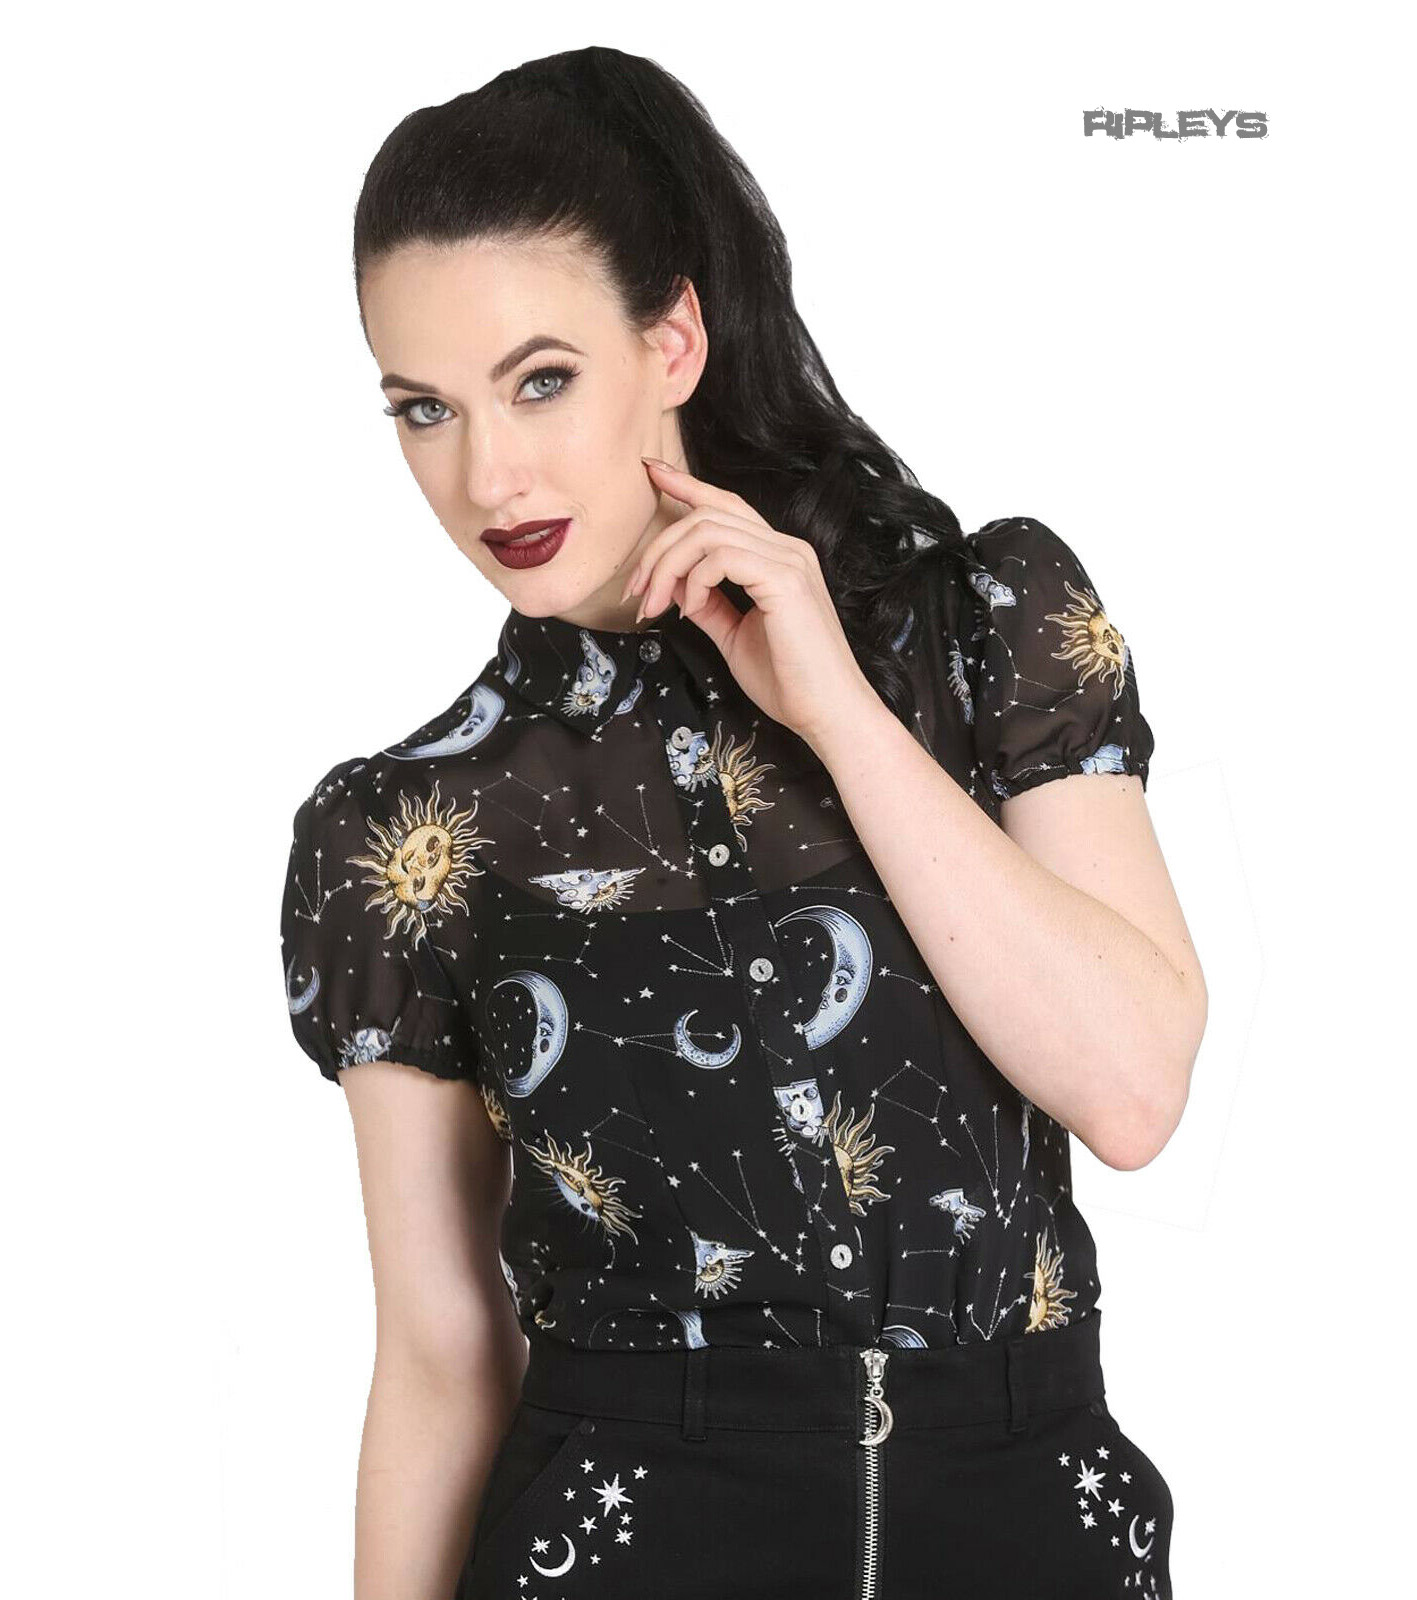 Hell-Bunny-50s-Shirt-Top-Gothic-Black-Sun-Moon-Stars-SOLARIS-Blouse-All-Sizes thumbnail 14